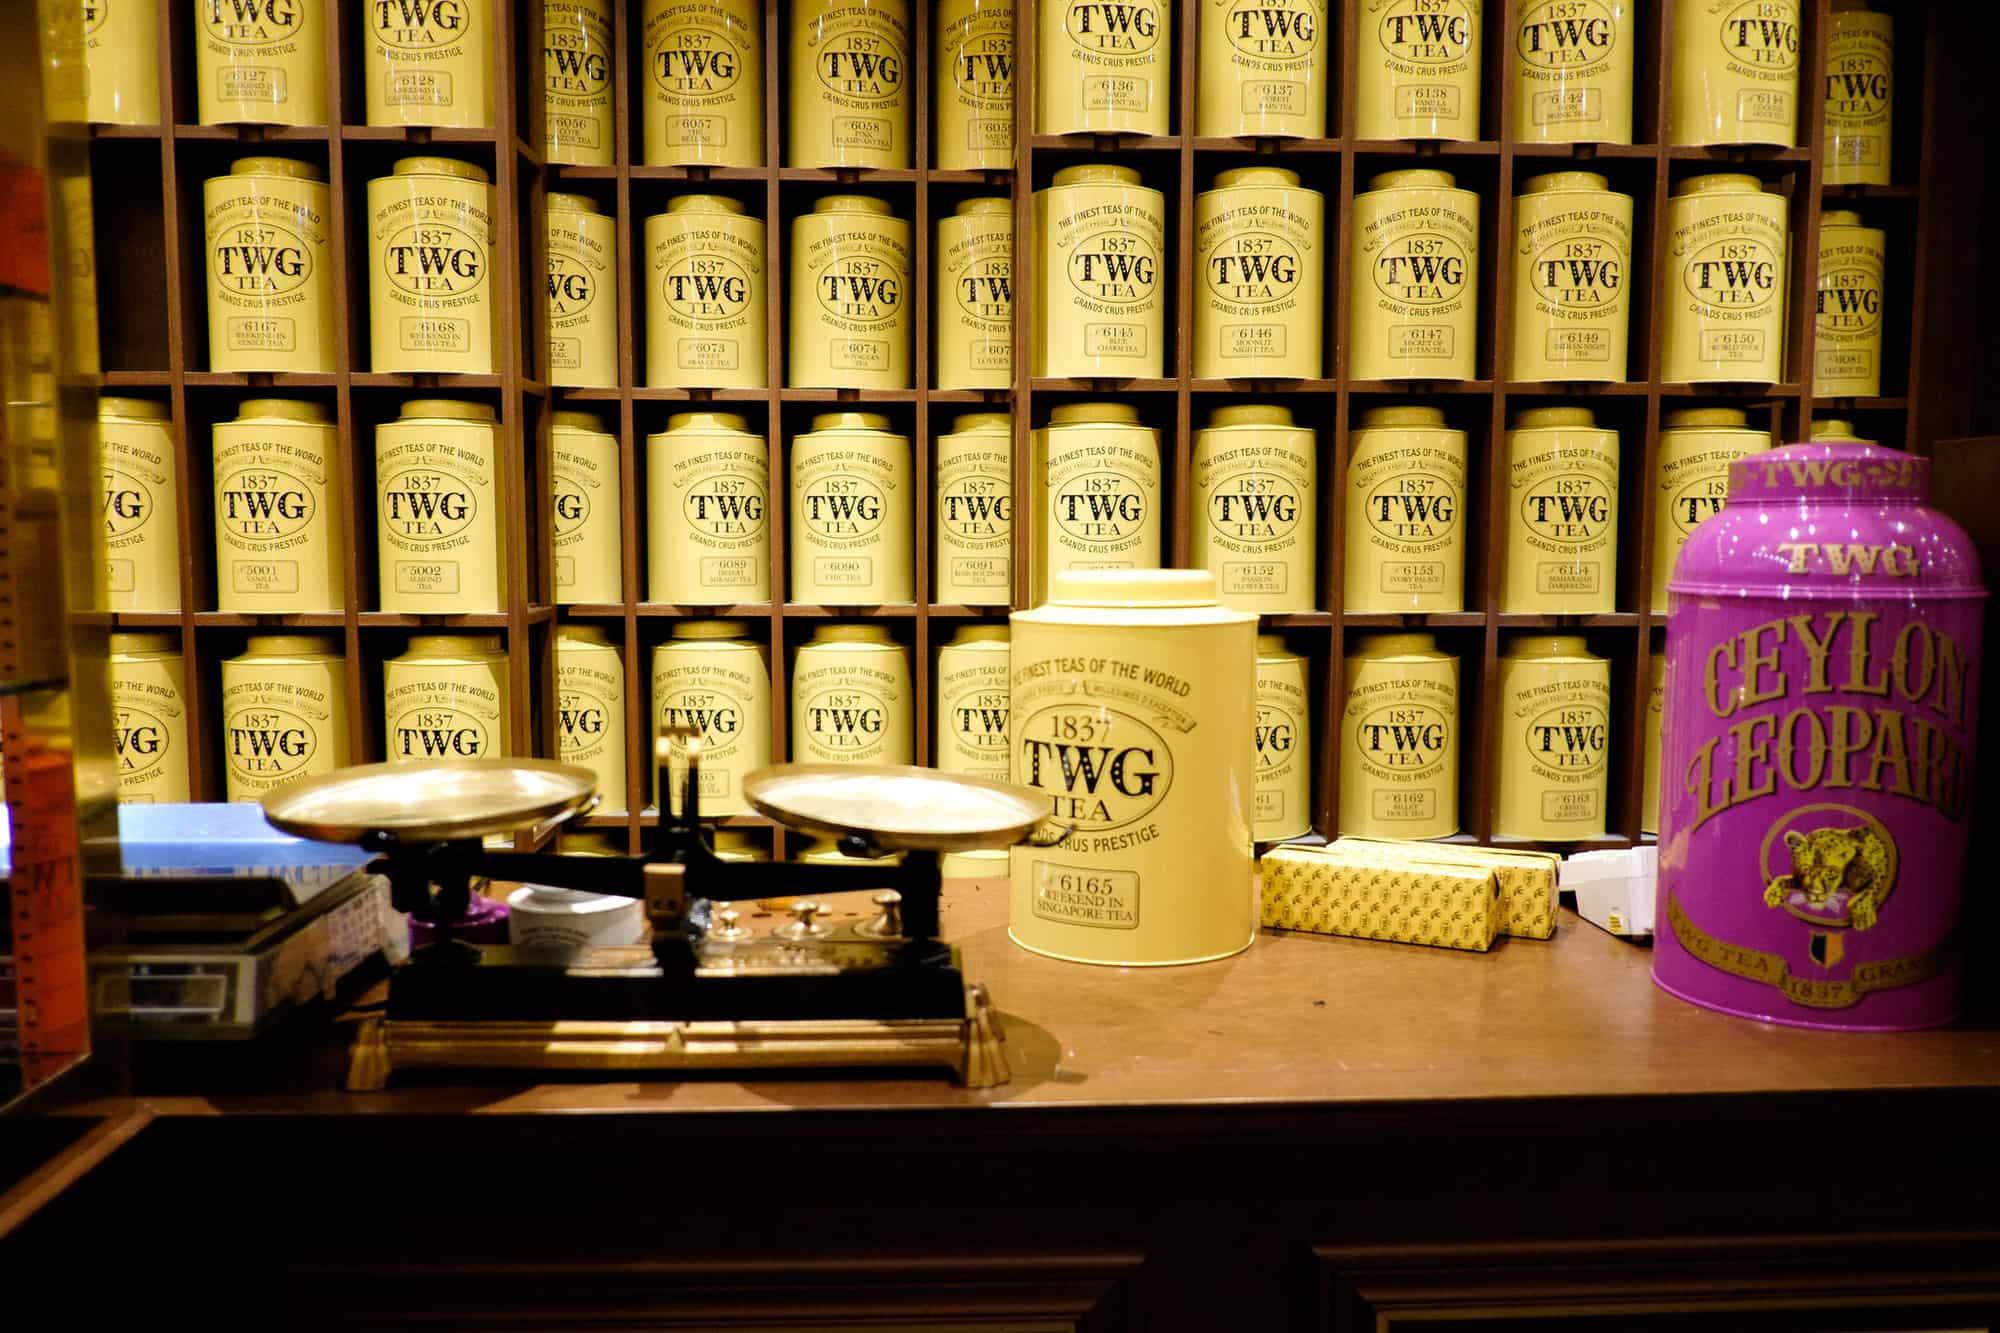 TWG Tea - a great food souvenir from Singapore